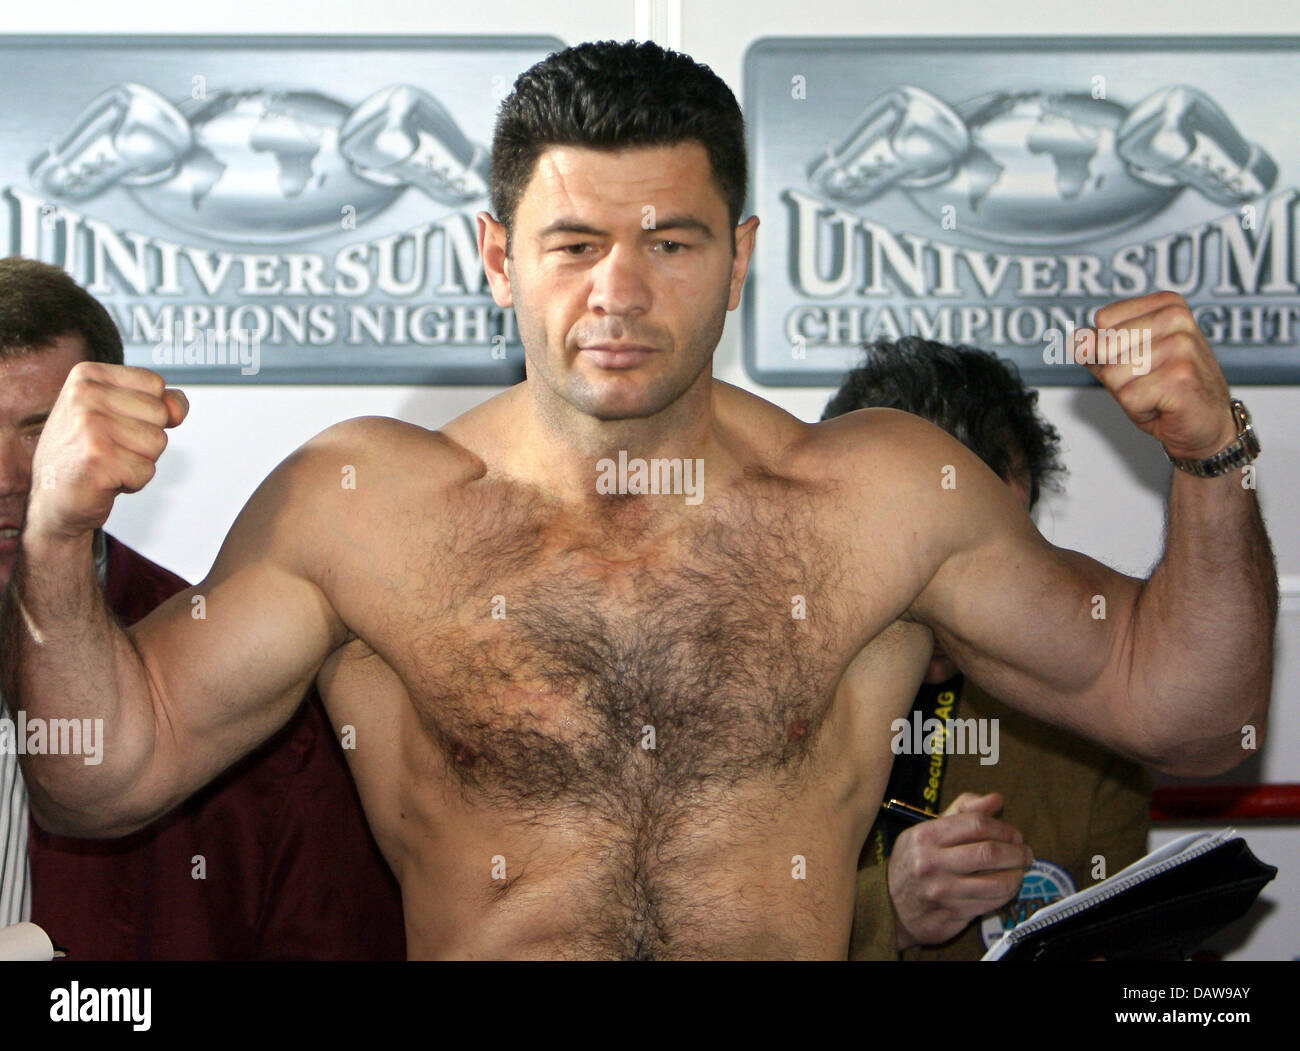 Heavyweight Boxer Luan Krasniqi Poses With Clenched Fists During The Stock Photo Alamy